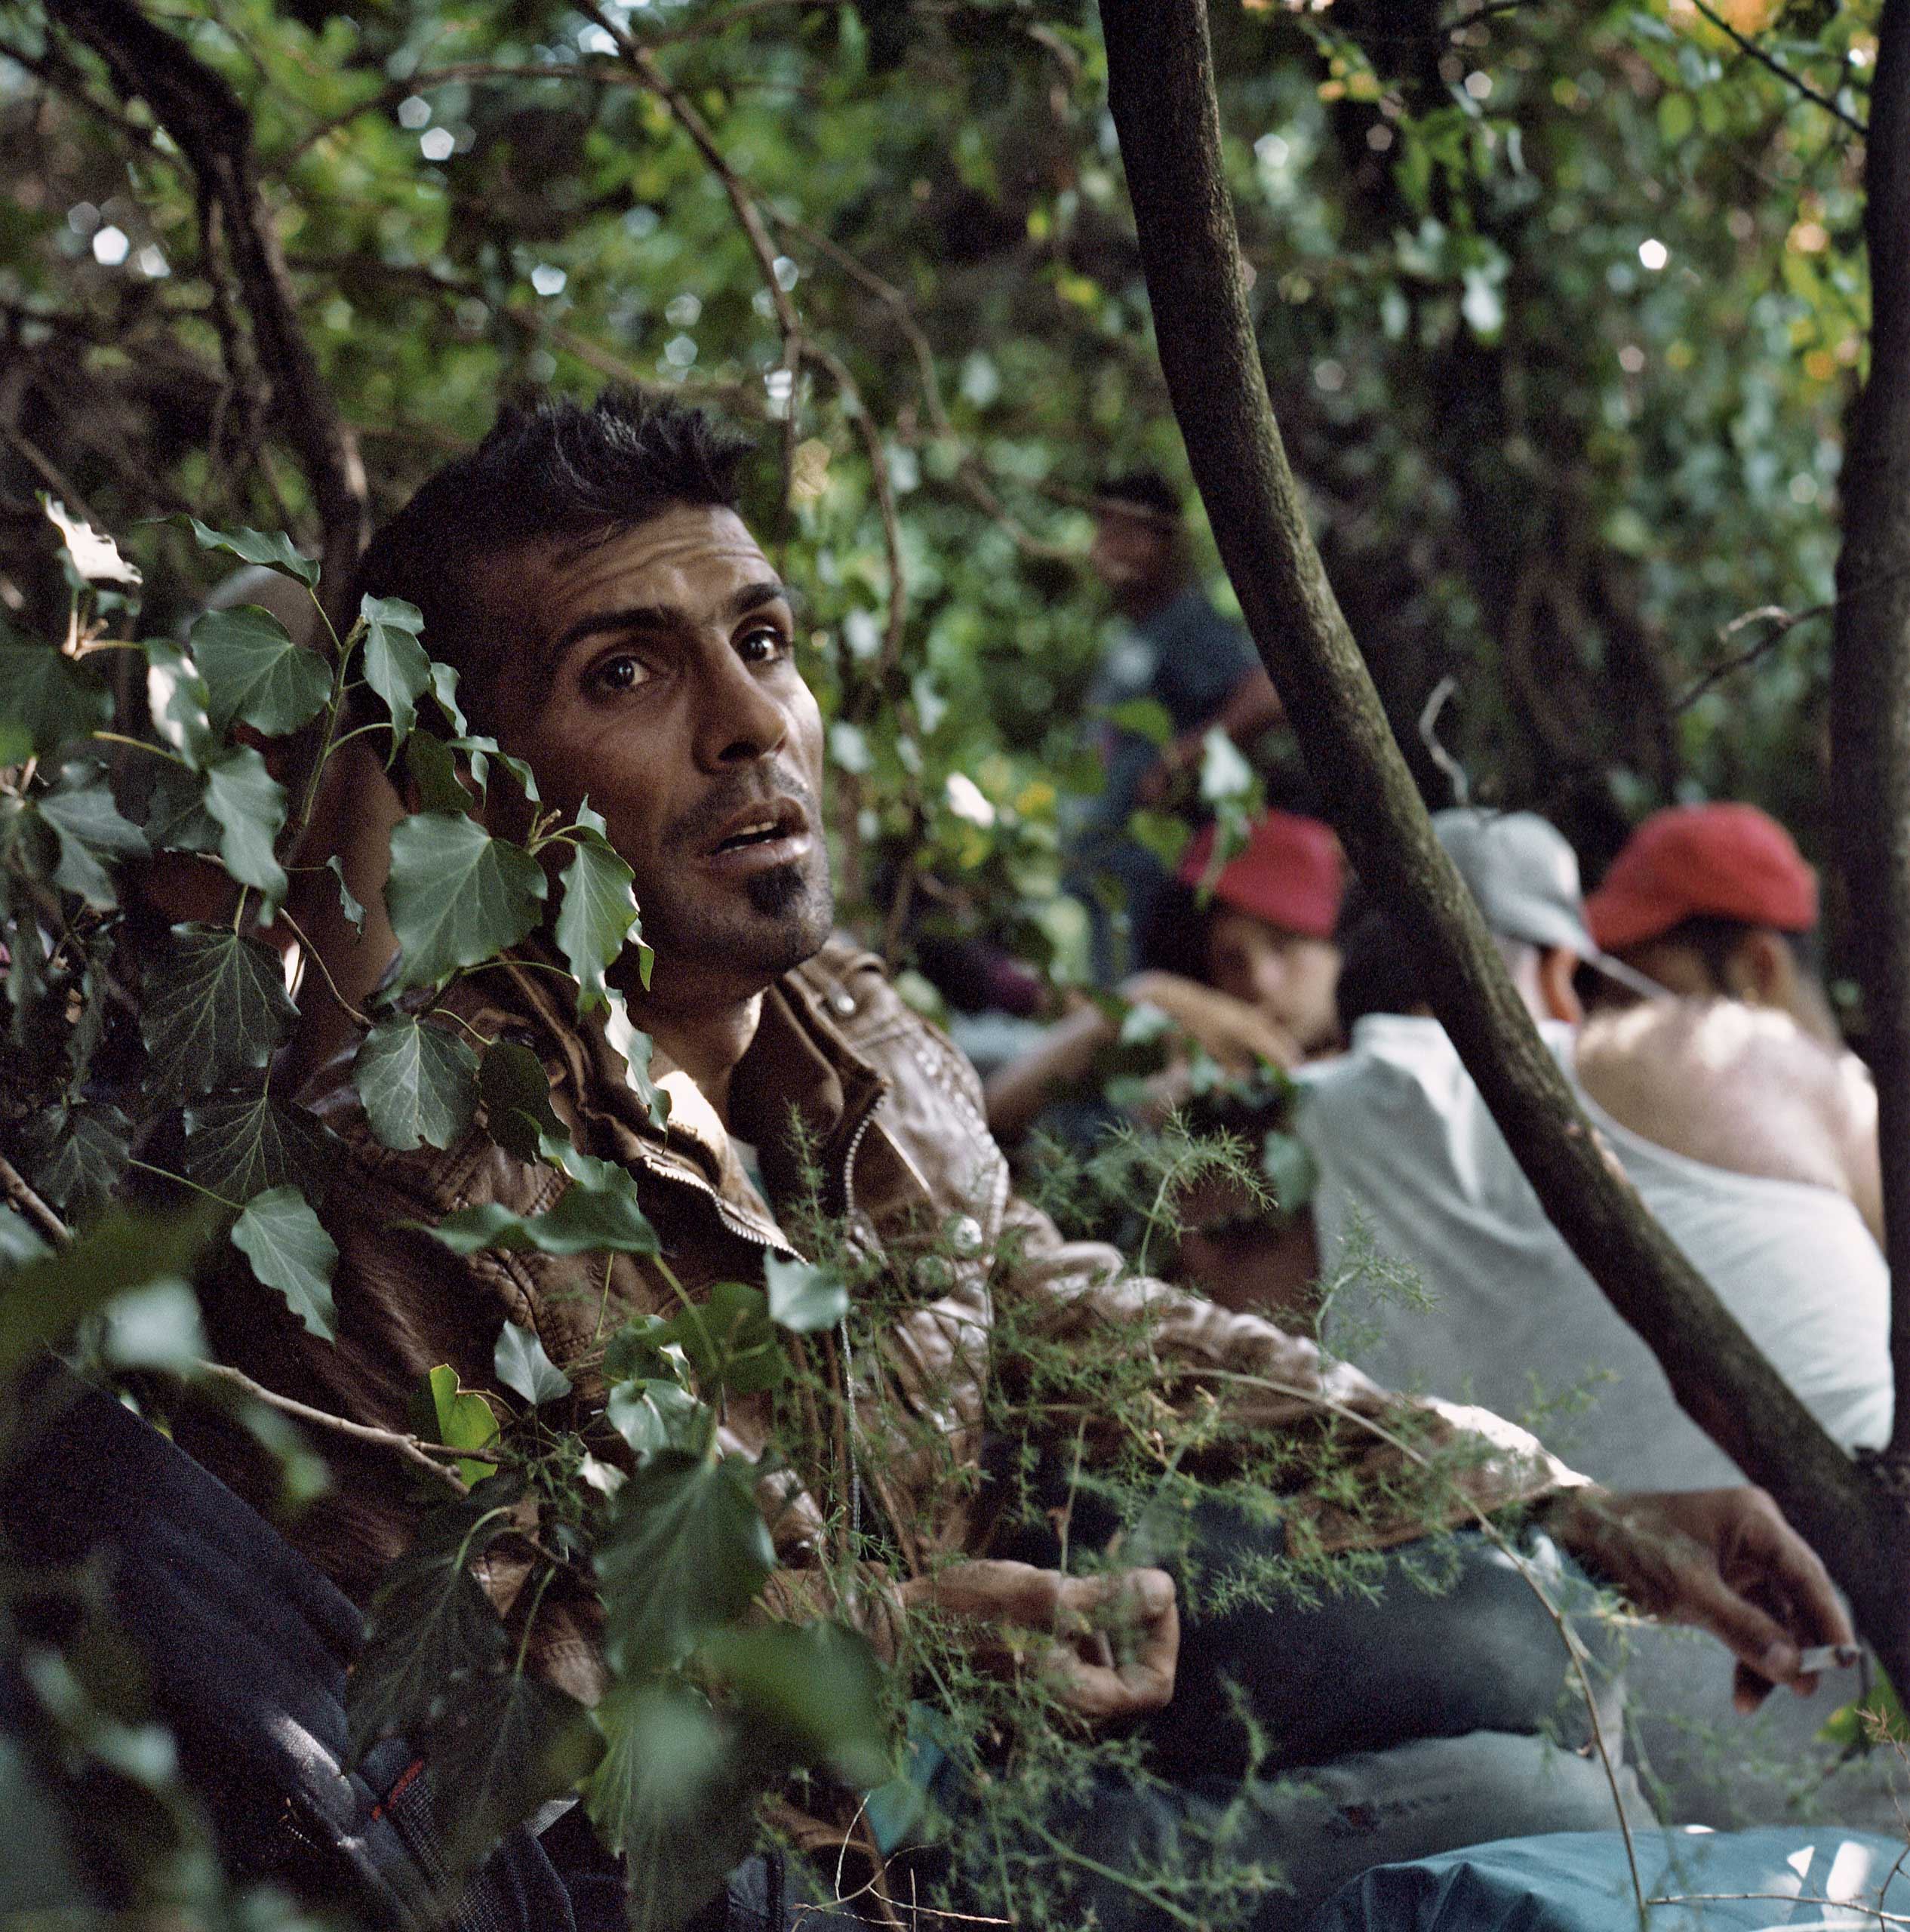 Syrian and Iraqi men hide in the bushes a few meters into the Macedonian territory waiting for nightfall in order to advance further into Macedonia, on their way to cross Serbia and Hungary with the hope of reaching Western Europe. Macedonia, June 2015.